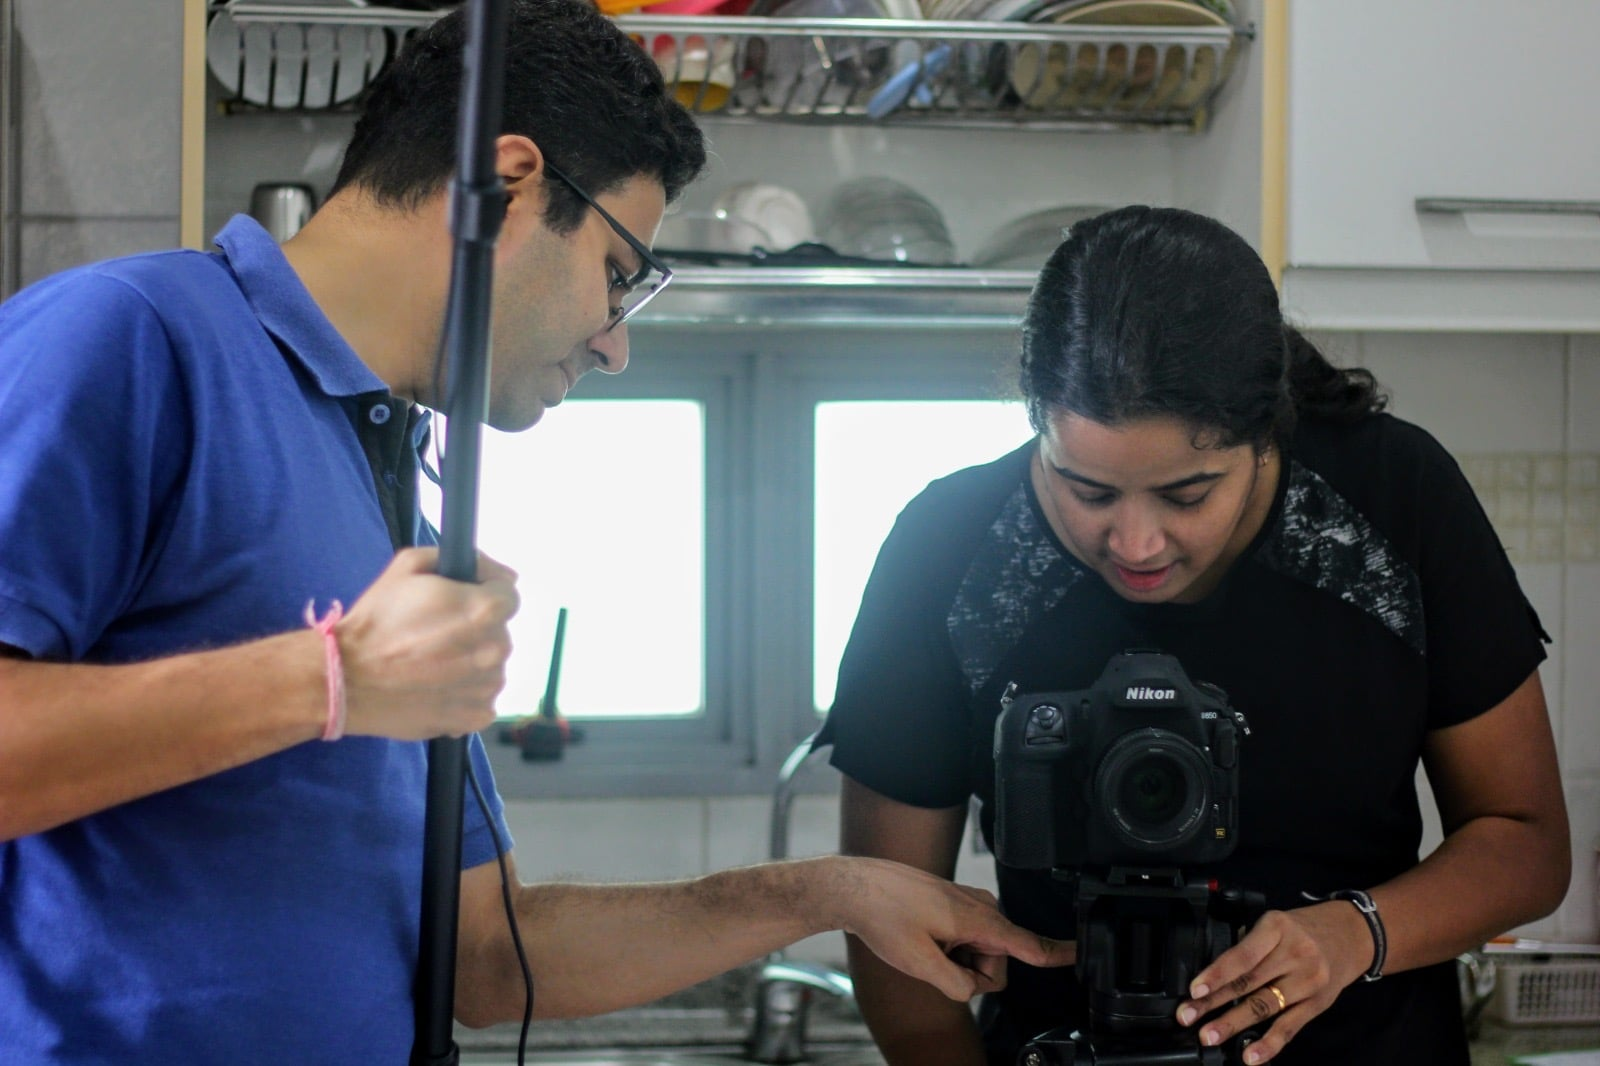 Black Dabba Production's Shivanu Shukla and Debutant Cinematographer Remya Warrier behind the scenes of Mini. Photo courtesy: Uma Kalyani